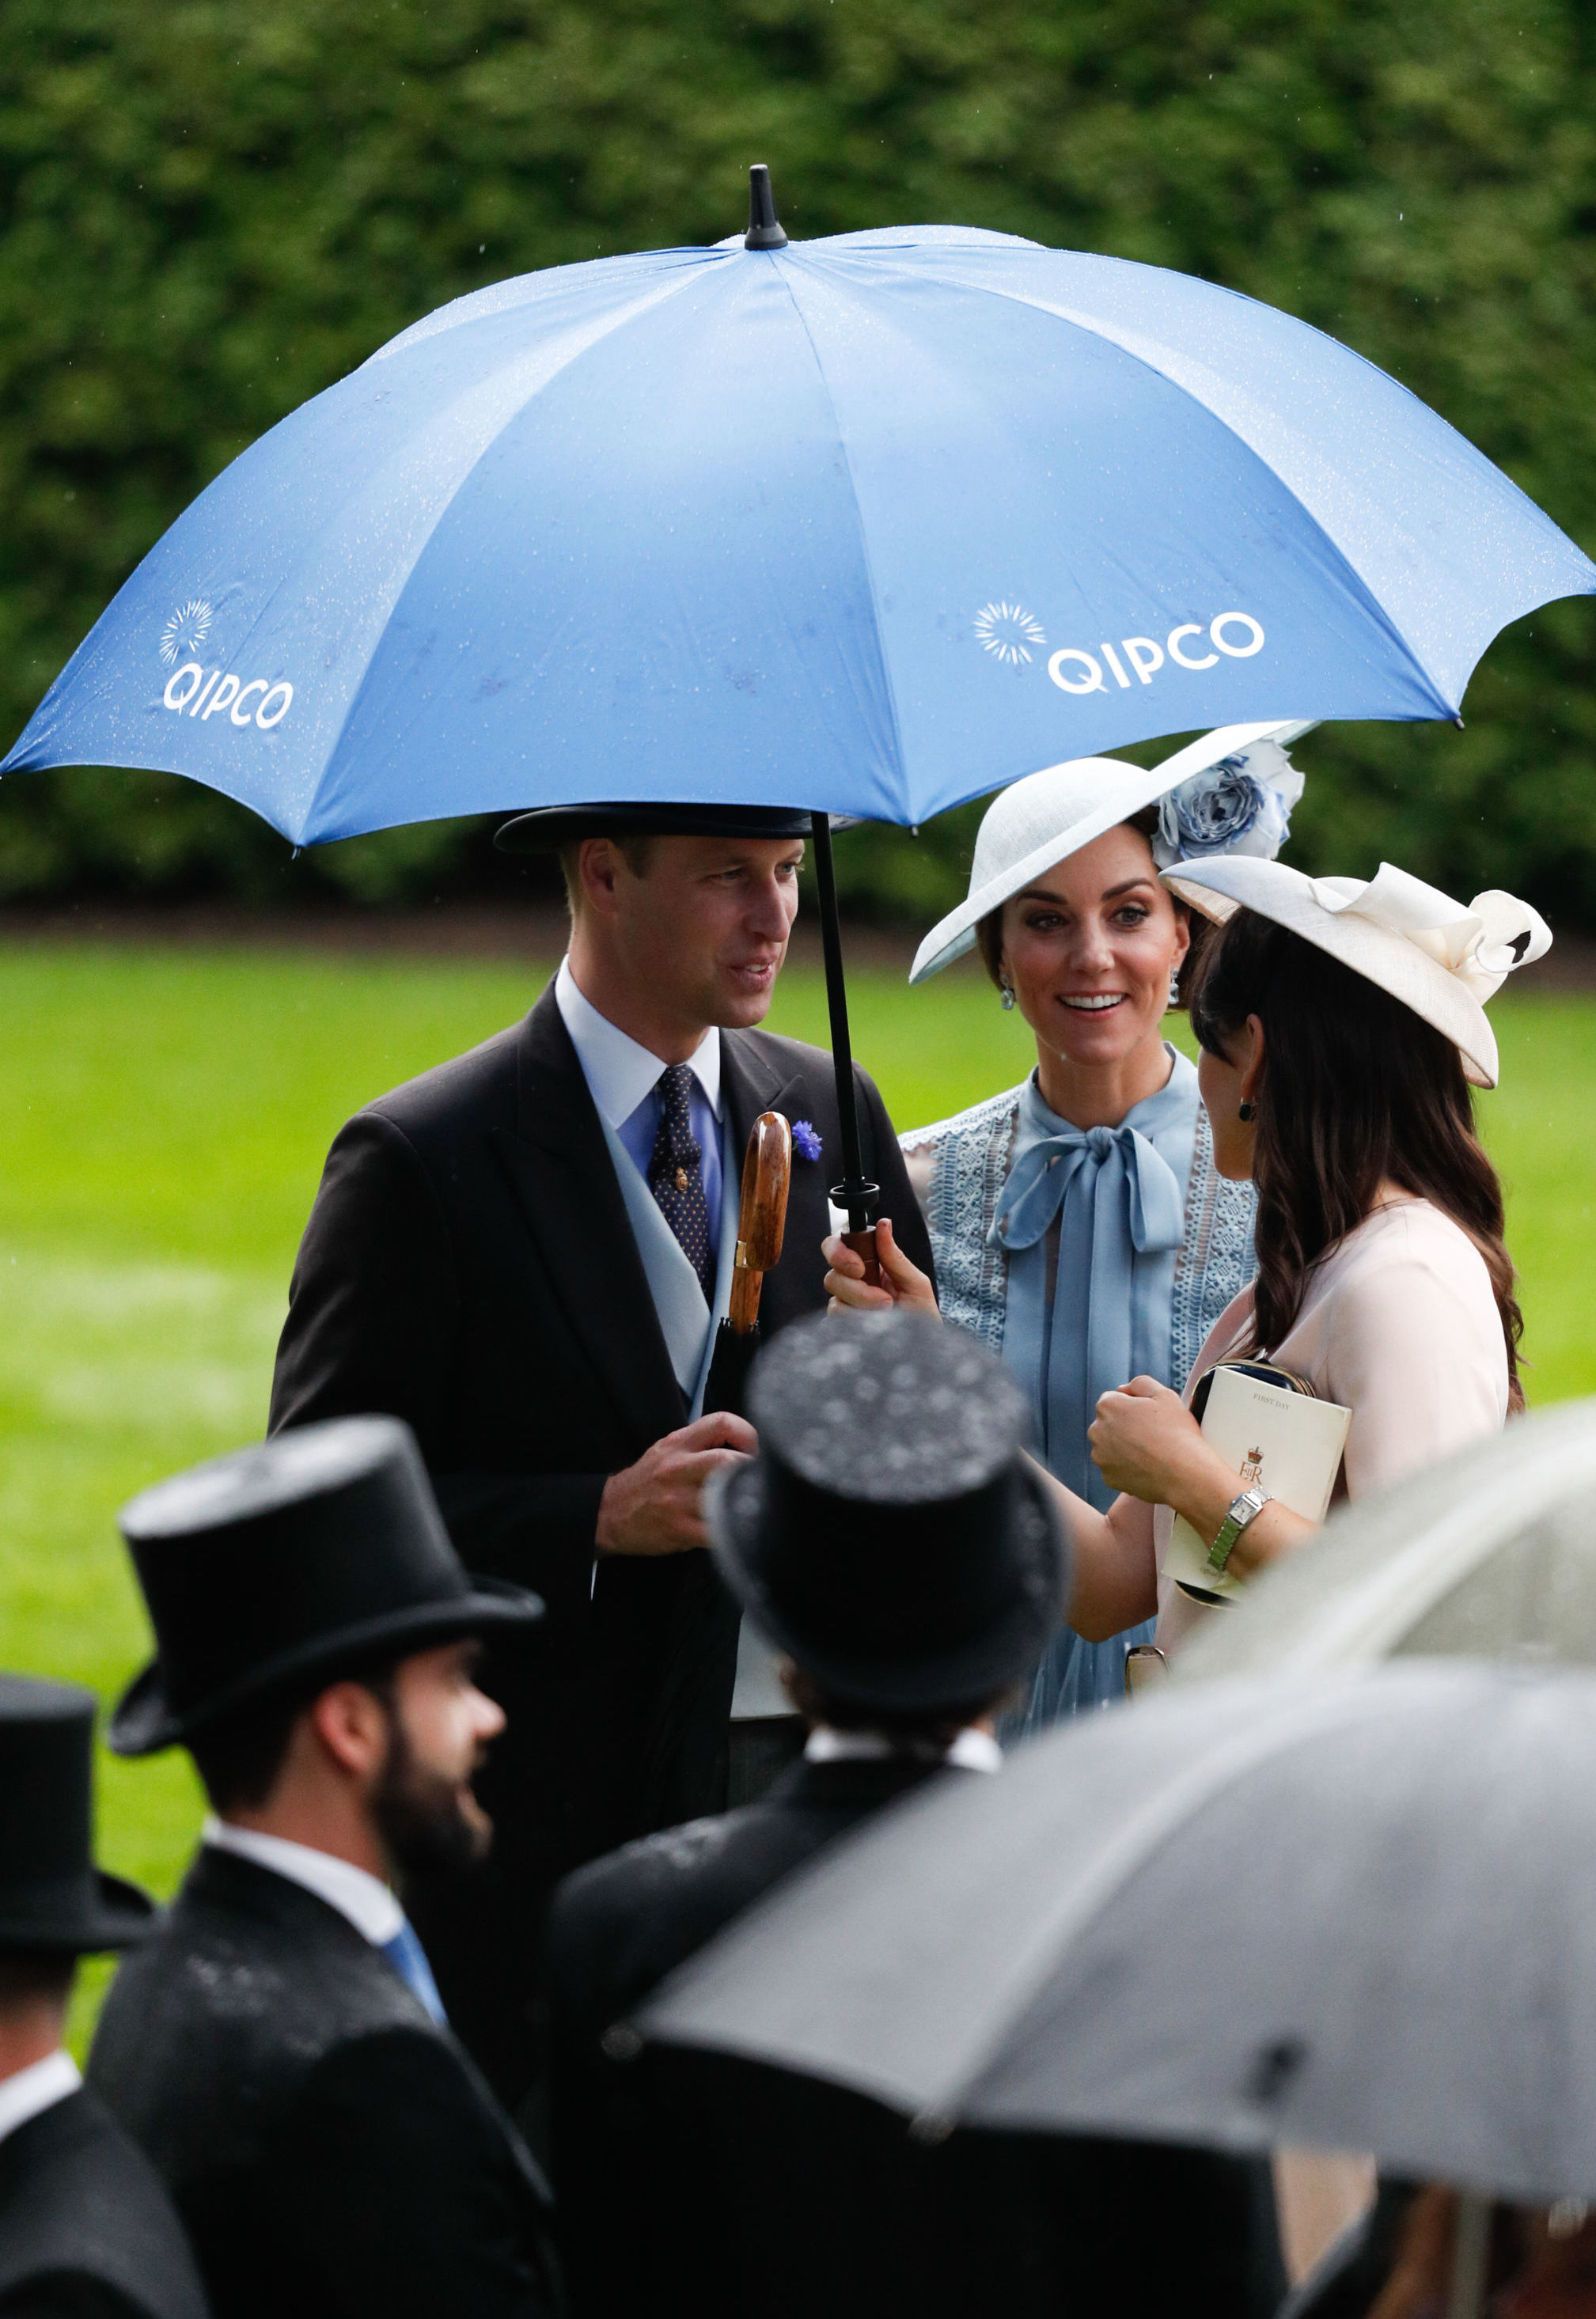 Britain's Prince William, Duke of Cambridge, (L) and Britain's Catherine, Duchess of Cambridge, (C) attend on day one of the Royal Ascot horse racing meet, in Ascot, west of London, on June 18, 2019